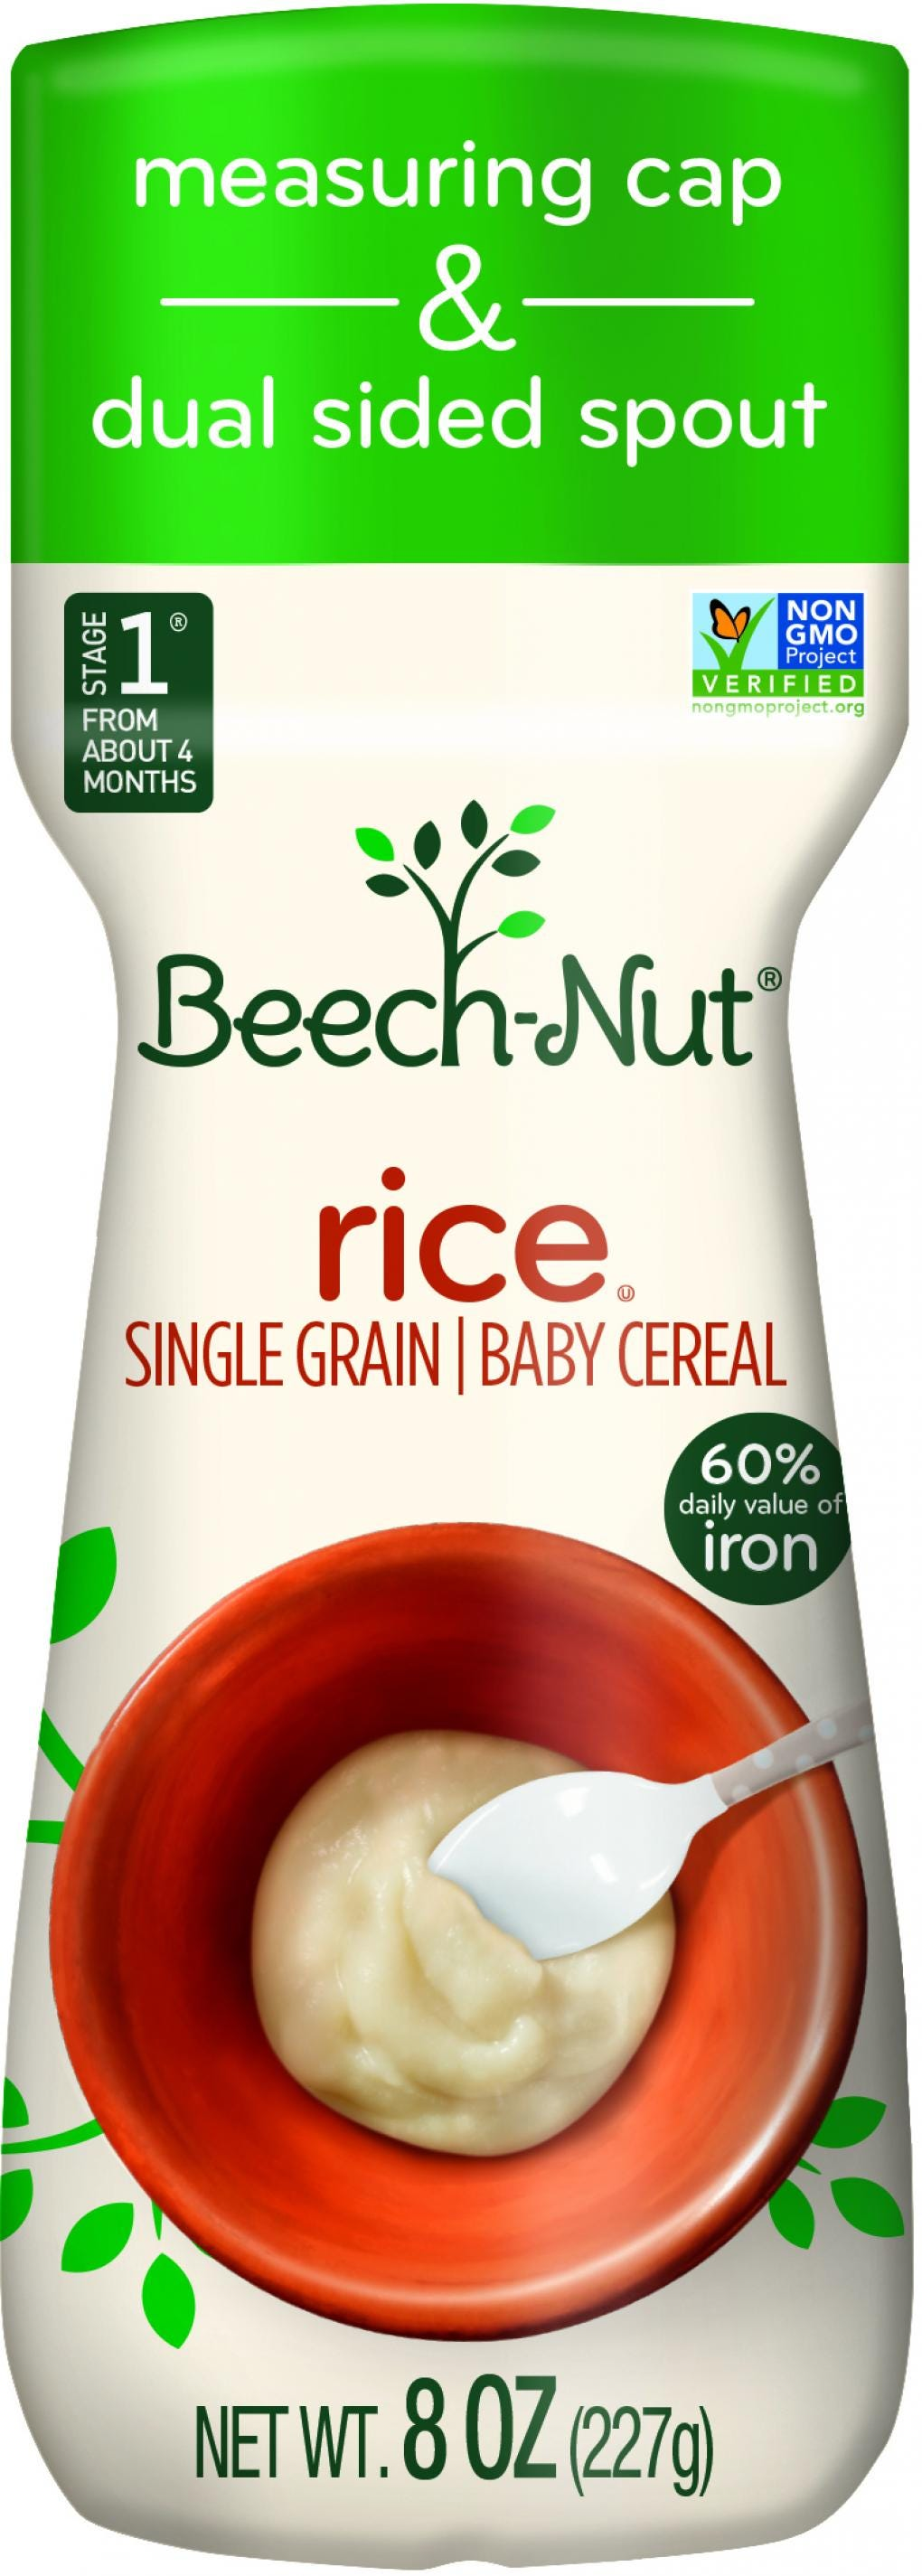 Beech-Nut recall: Baby food brand will stop selling rice cereal due to high arsenic levels